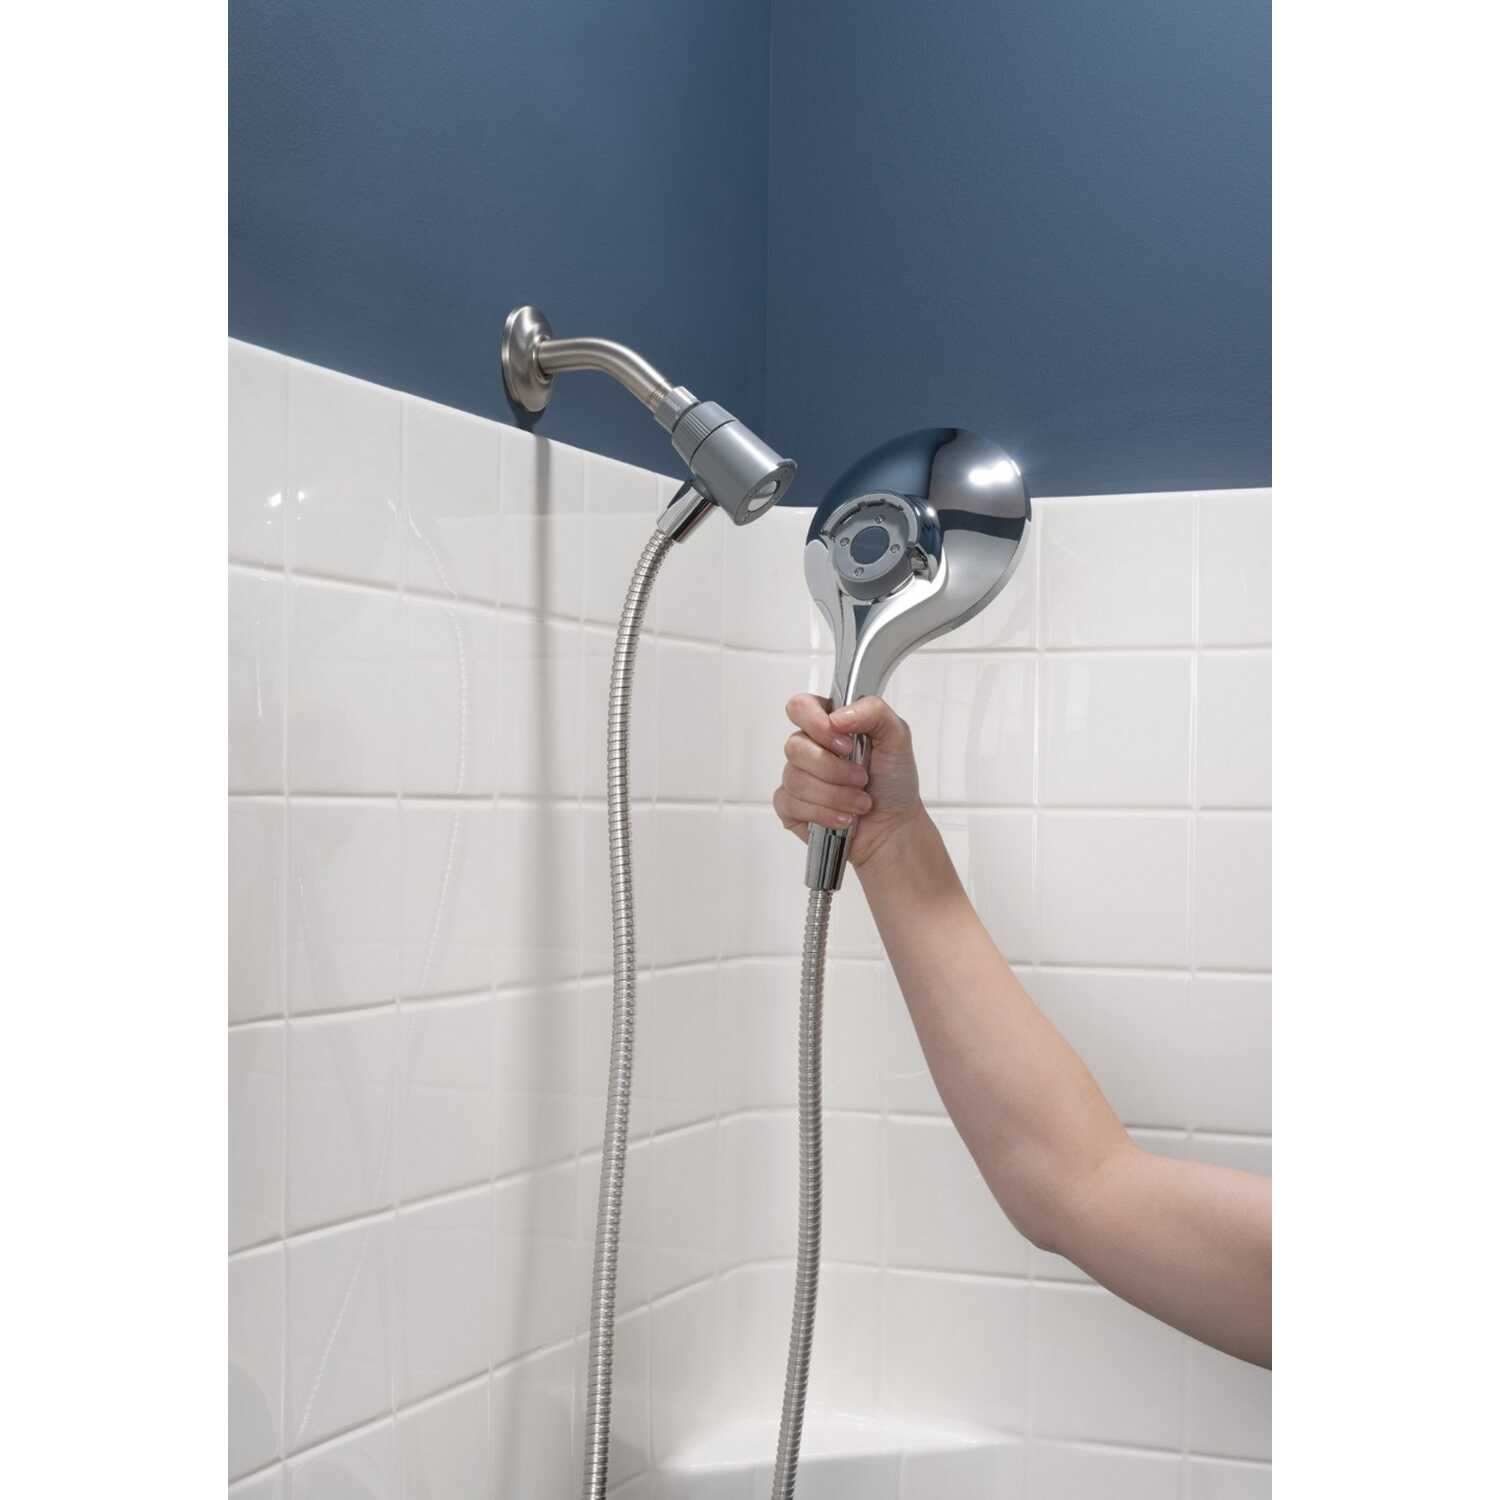 Moen  Engage  Chrome  6 settings Handheld Showerhead  2 gpm